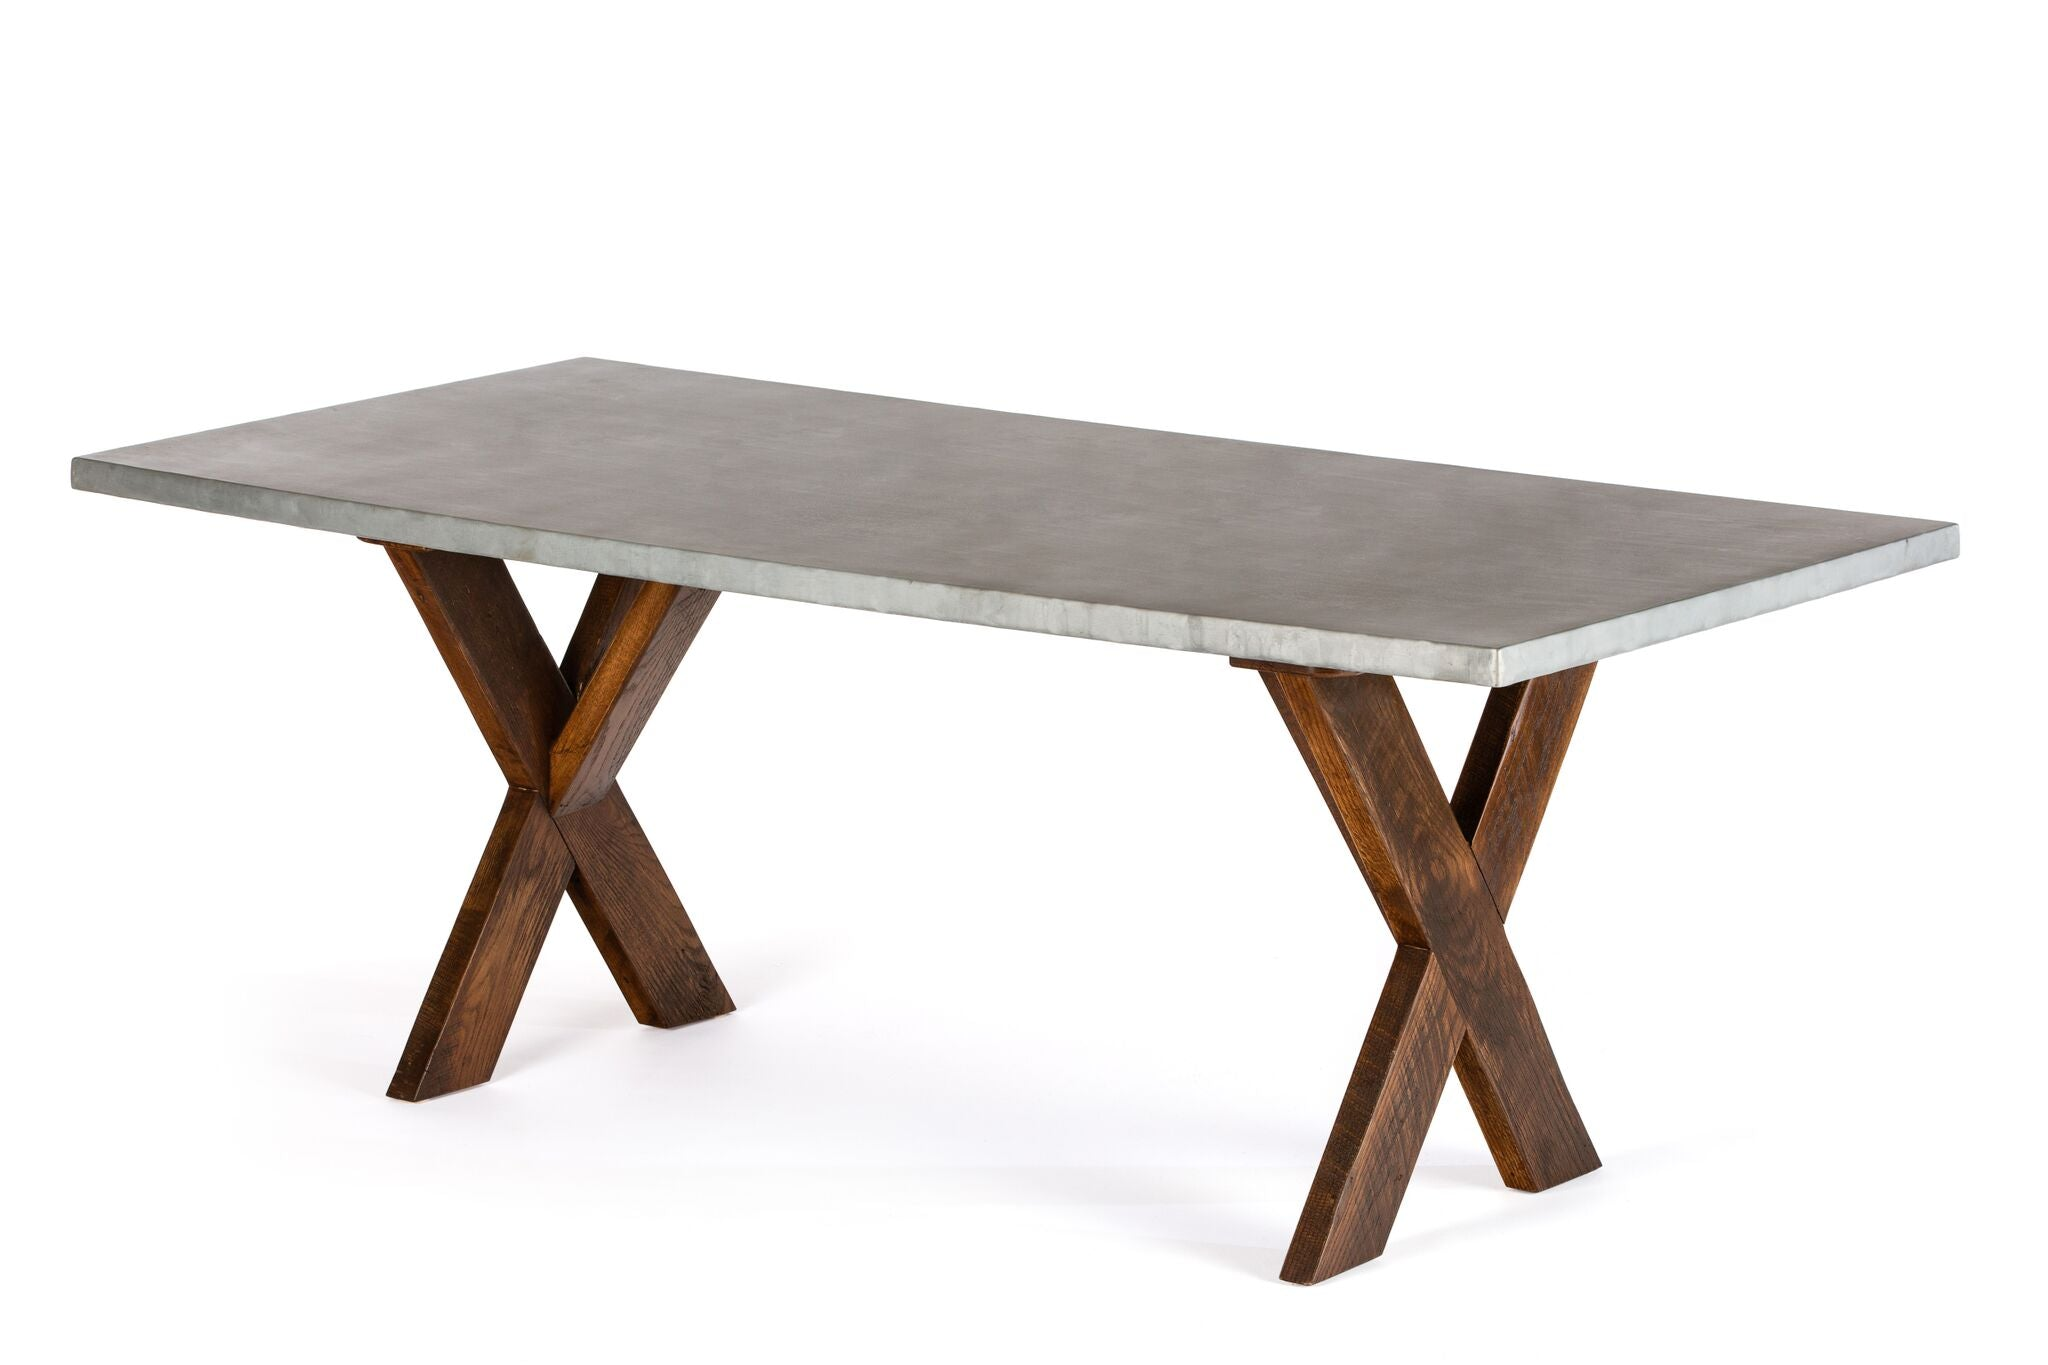 Zinc Rectangular Table | X Base Trestle Table | CLASSIC | Natural Ash | CUSTOM SIZE L 60.00 W 37.00 H undefined |